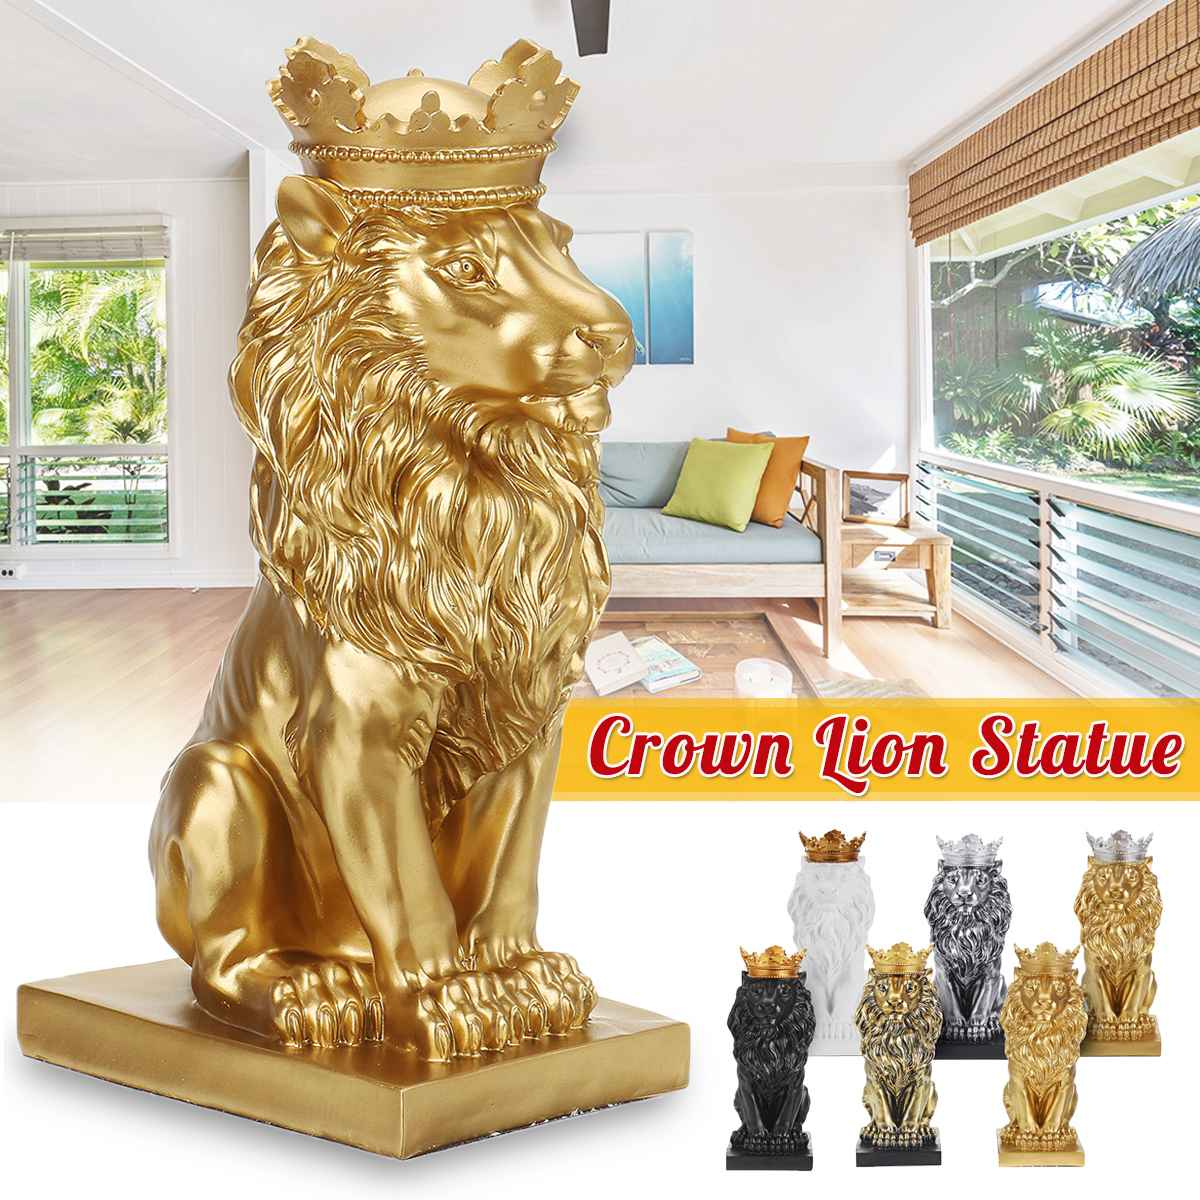 Resin Abstract Lion Sculpture Crown Lion Statue For Decoration Handicraft Lion King Model Christmas Home Ornaments Figurine